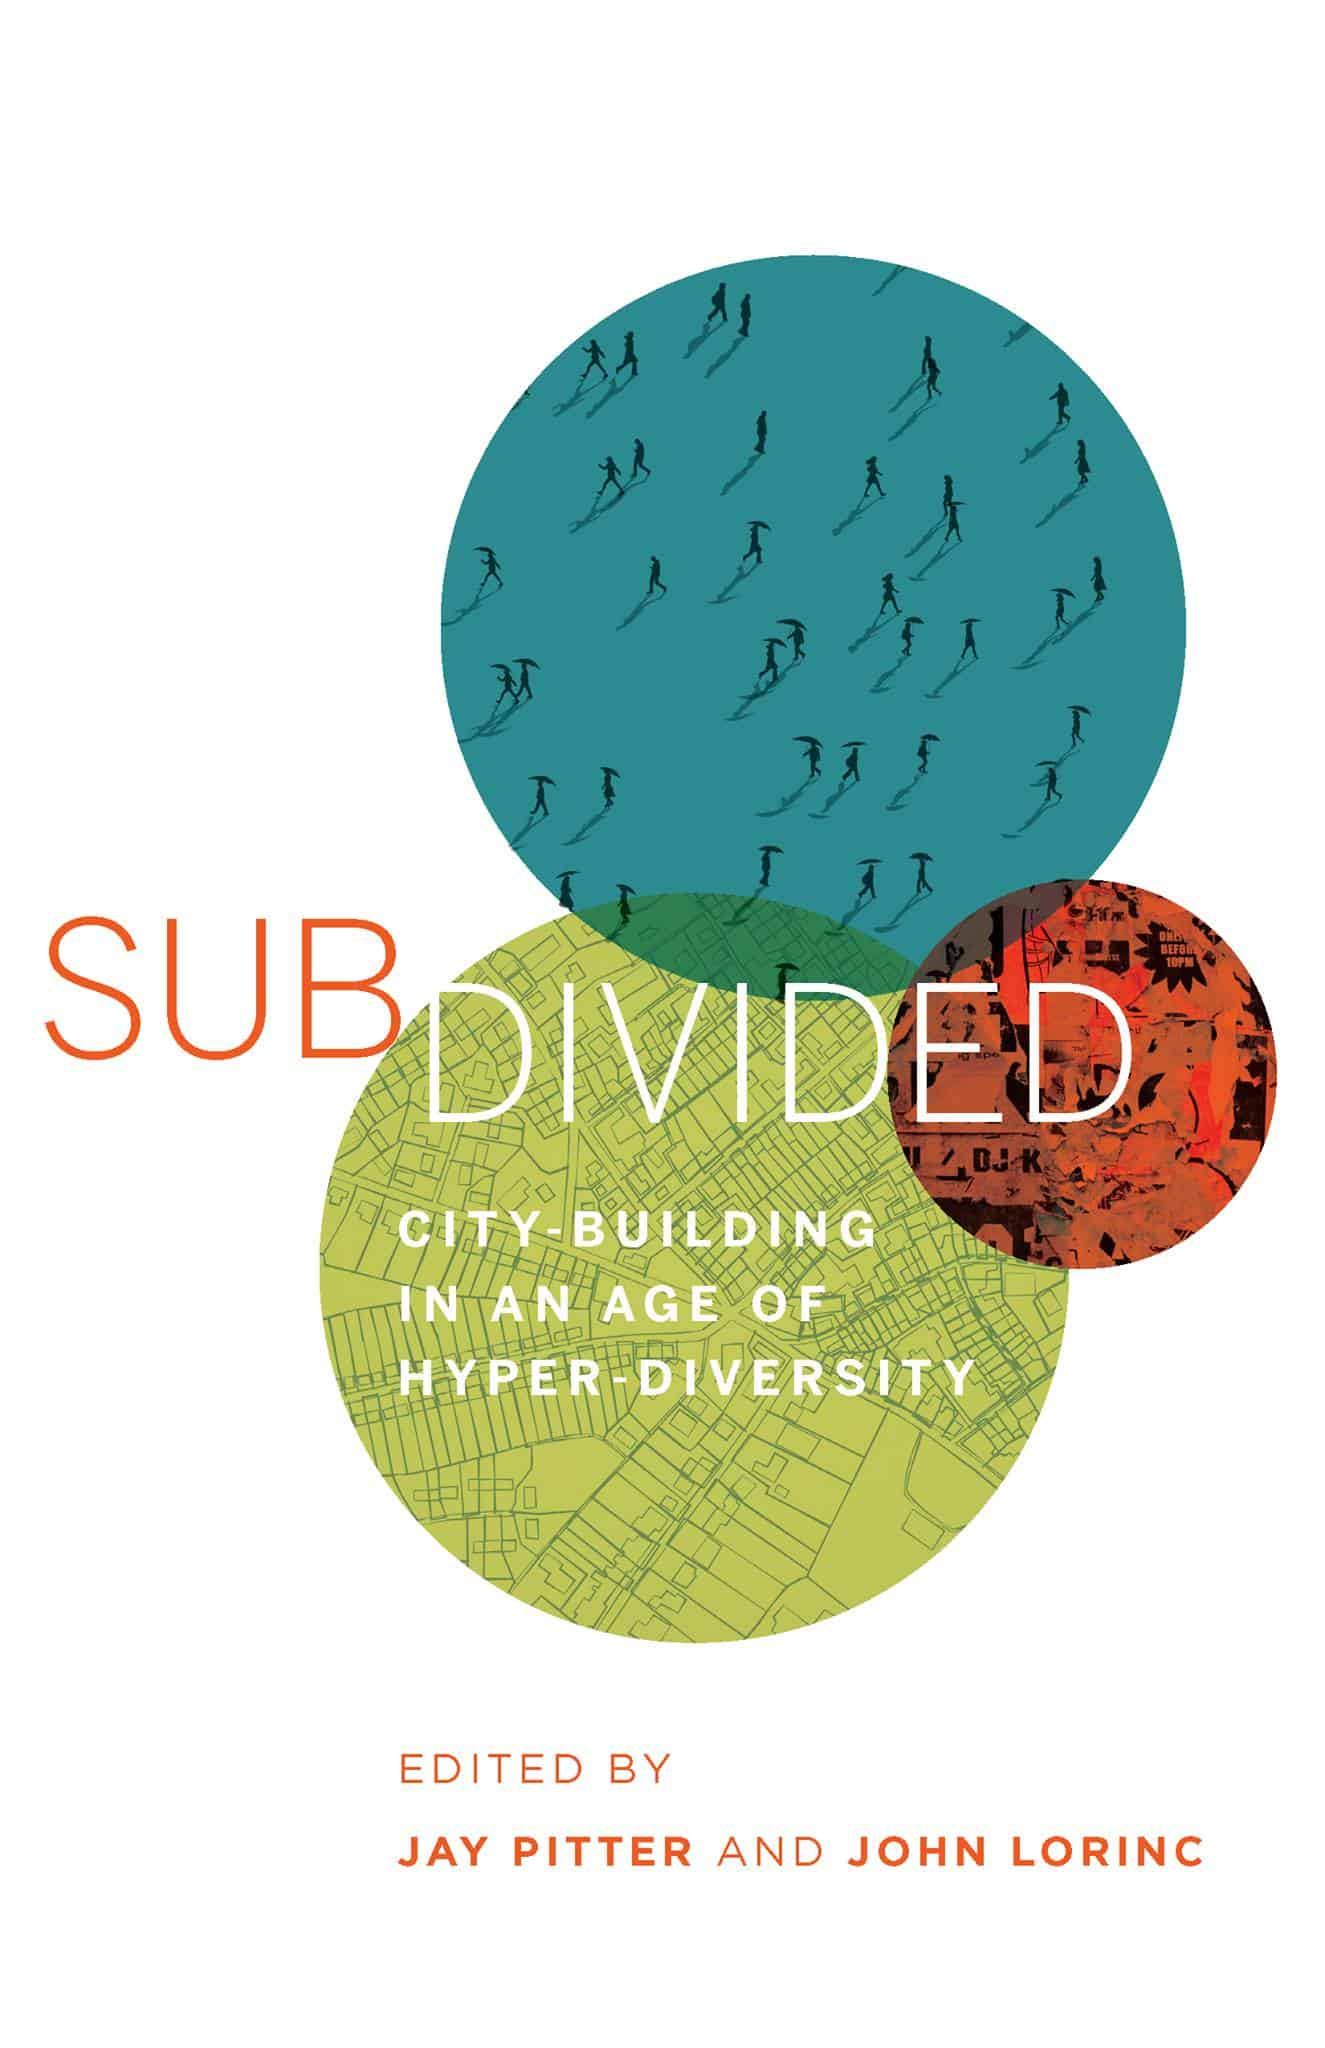 Subdivided: City-Building In An Age of Hyper-Diversity - Launch This May